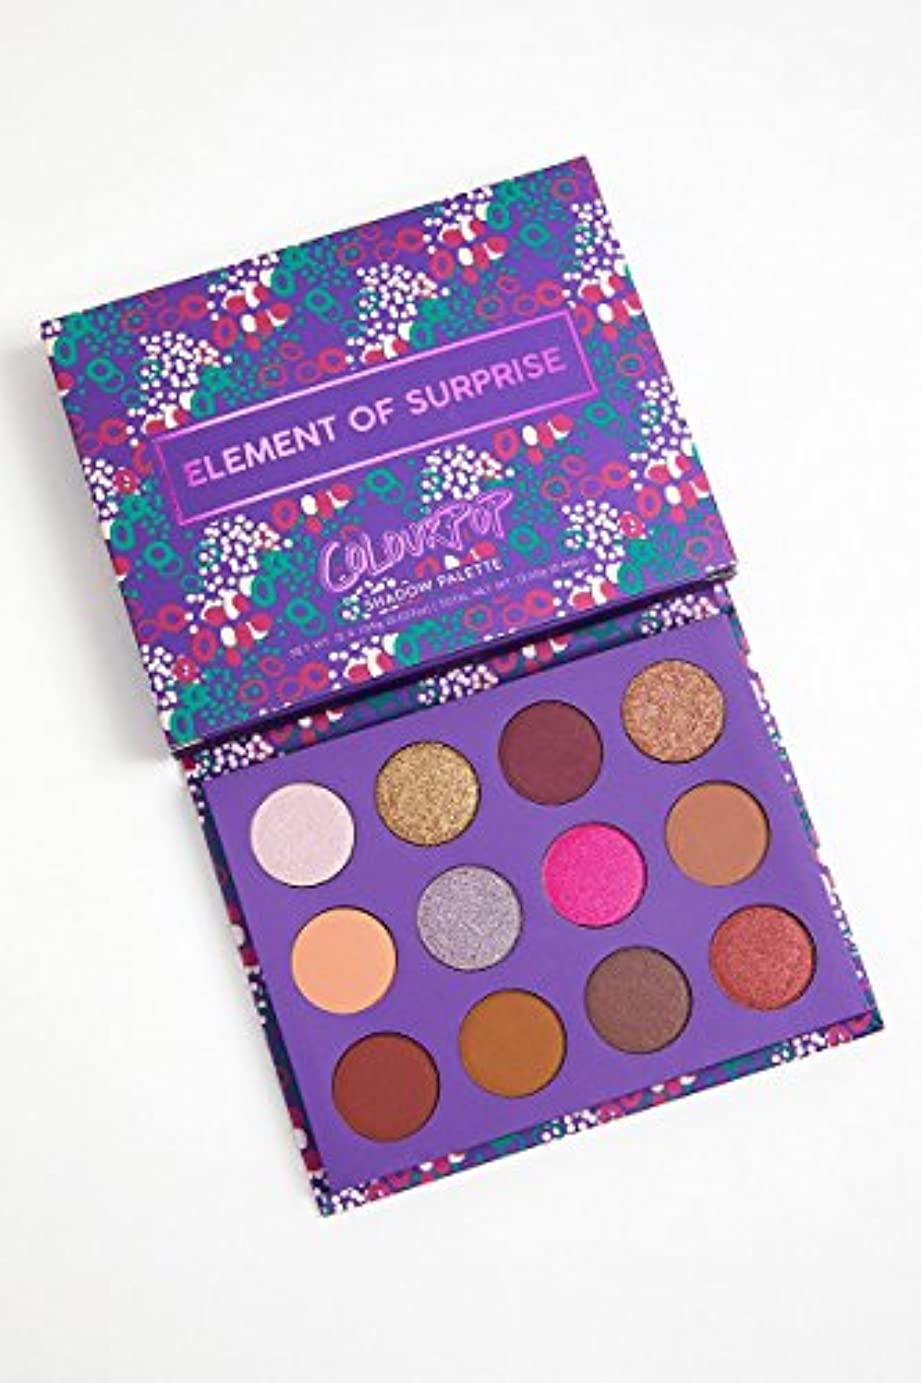 従順な修道院お誕生日ColourPop - Pressed Powder Shadow Palette - Element of Surprise